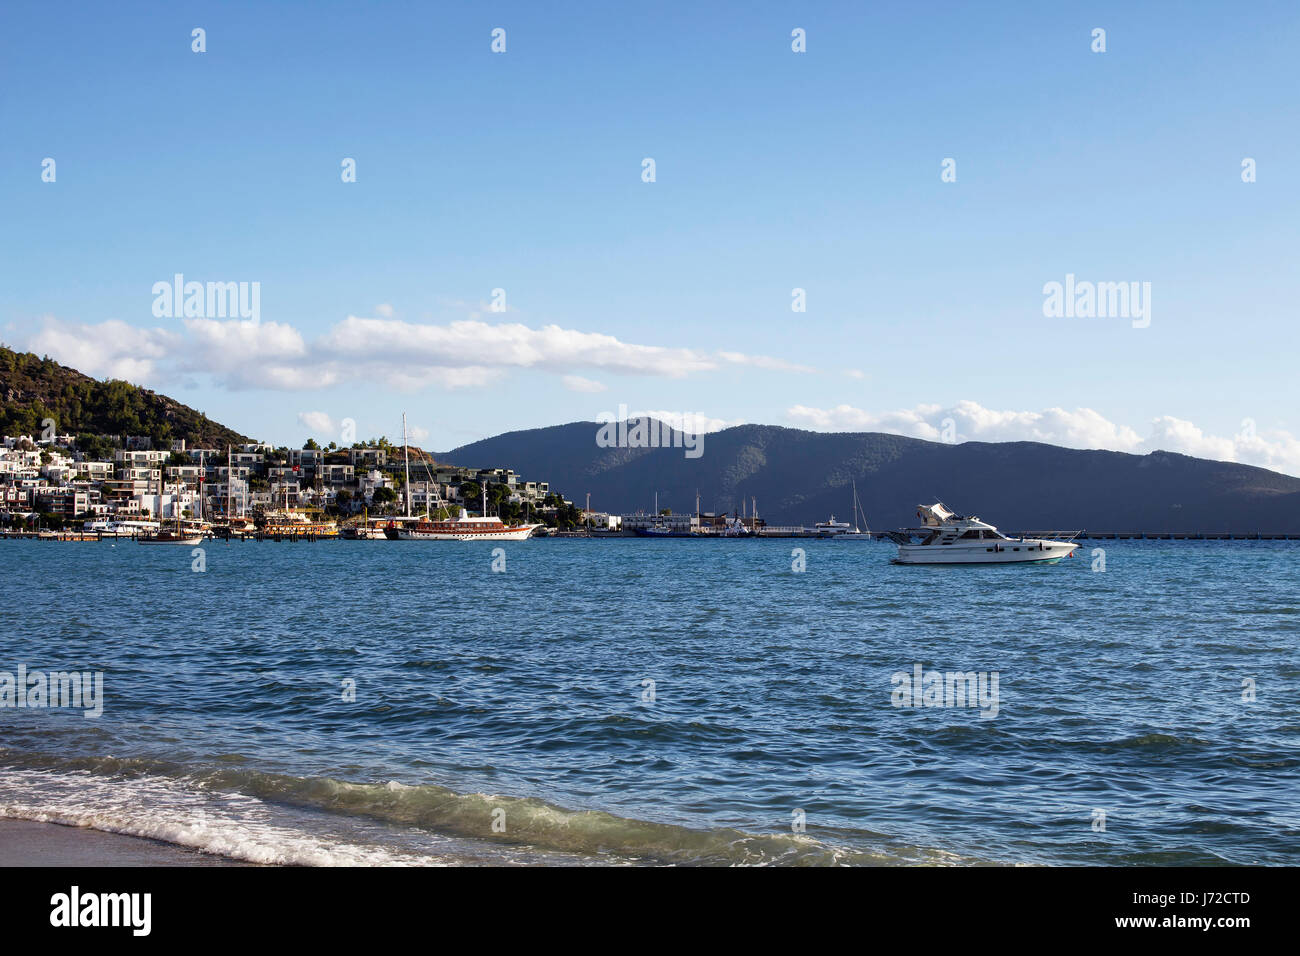 view of yachts summer houses and landscape in bodrum southwestern